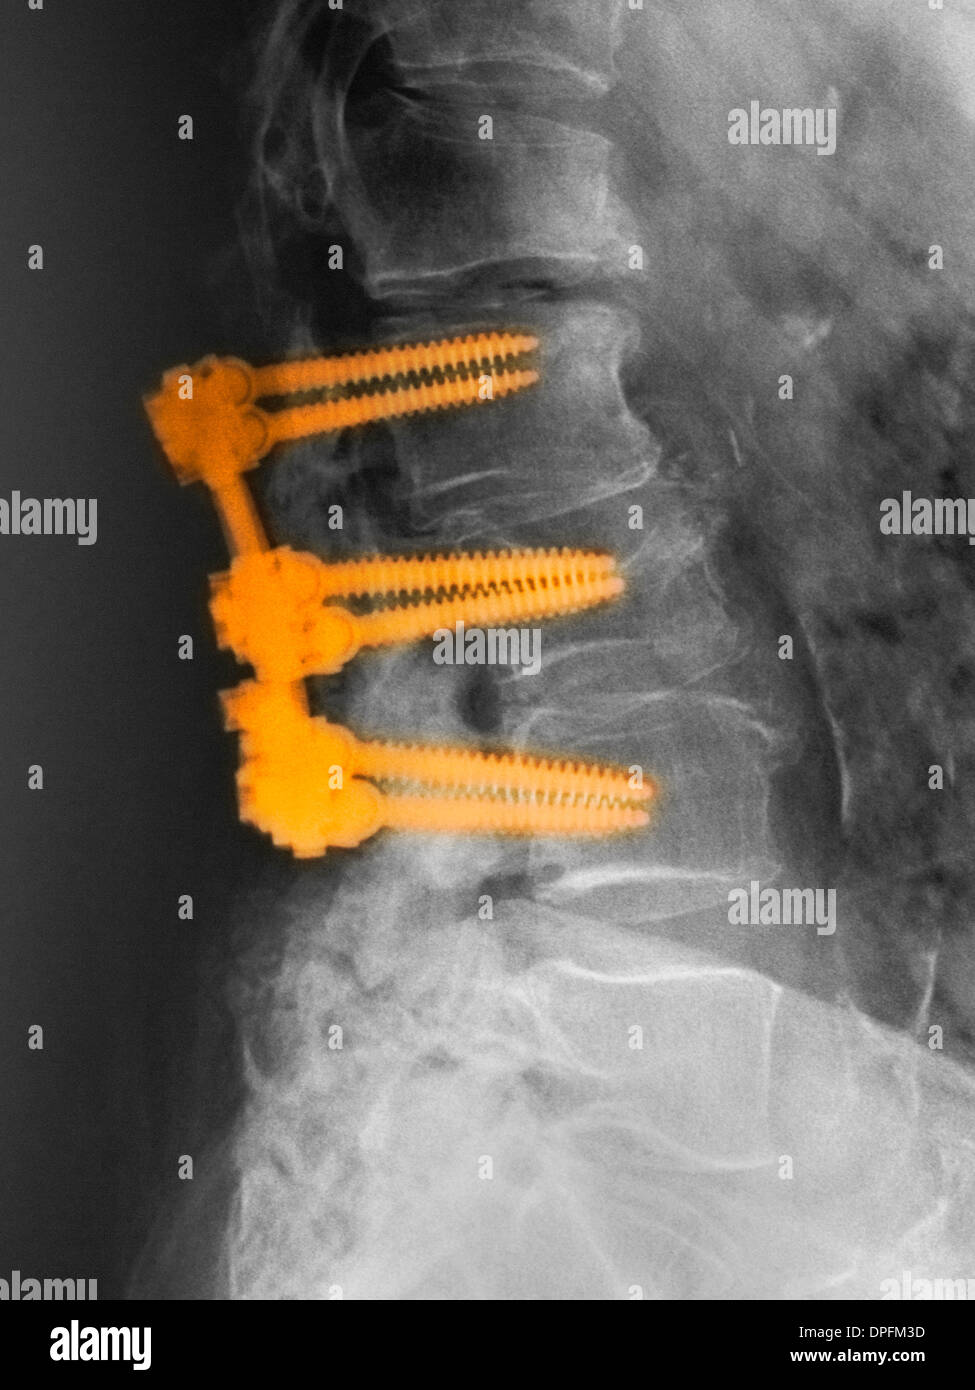 lumbar spine with spinal fusion hardware - Stock Image